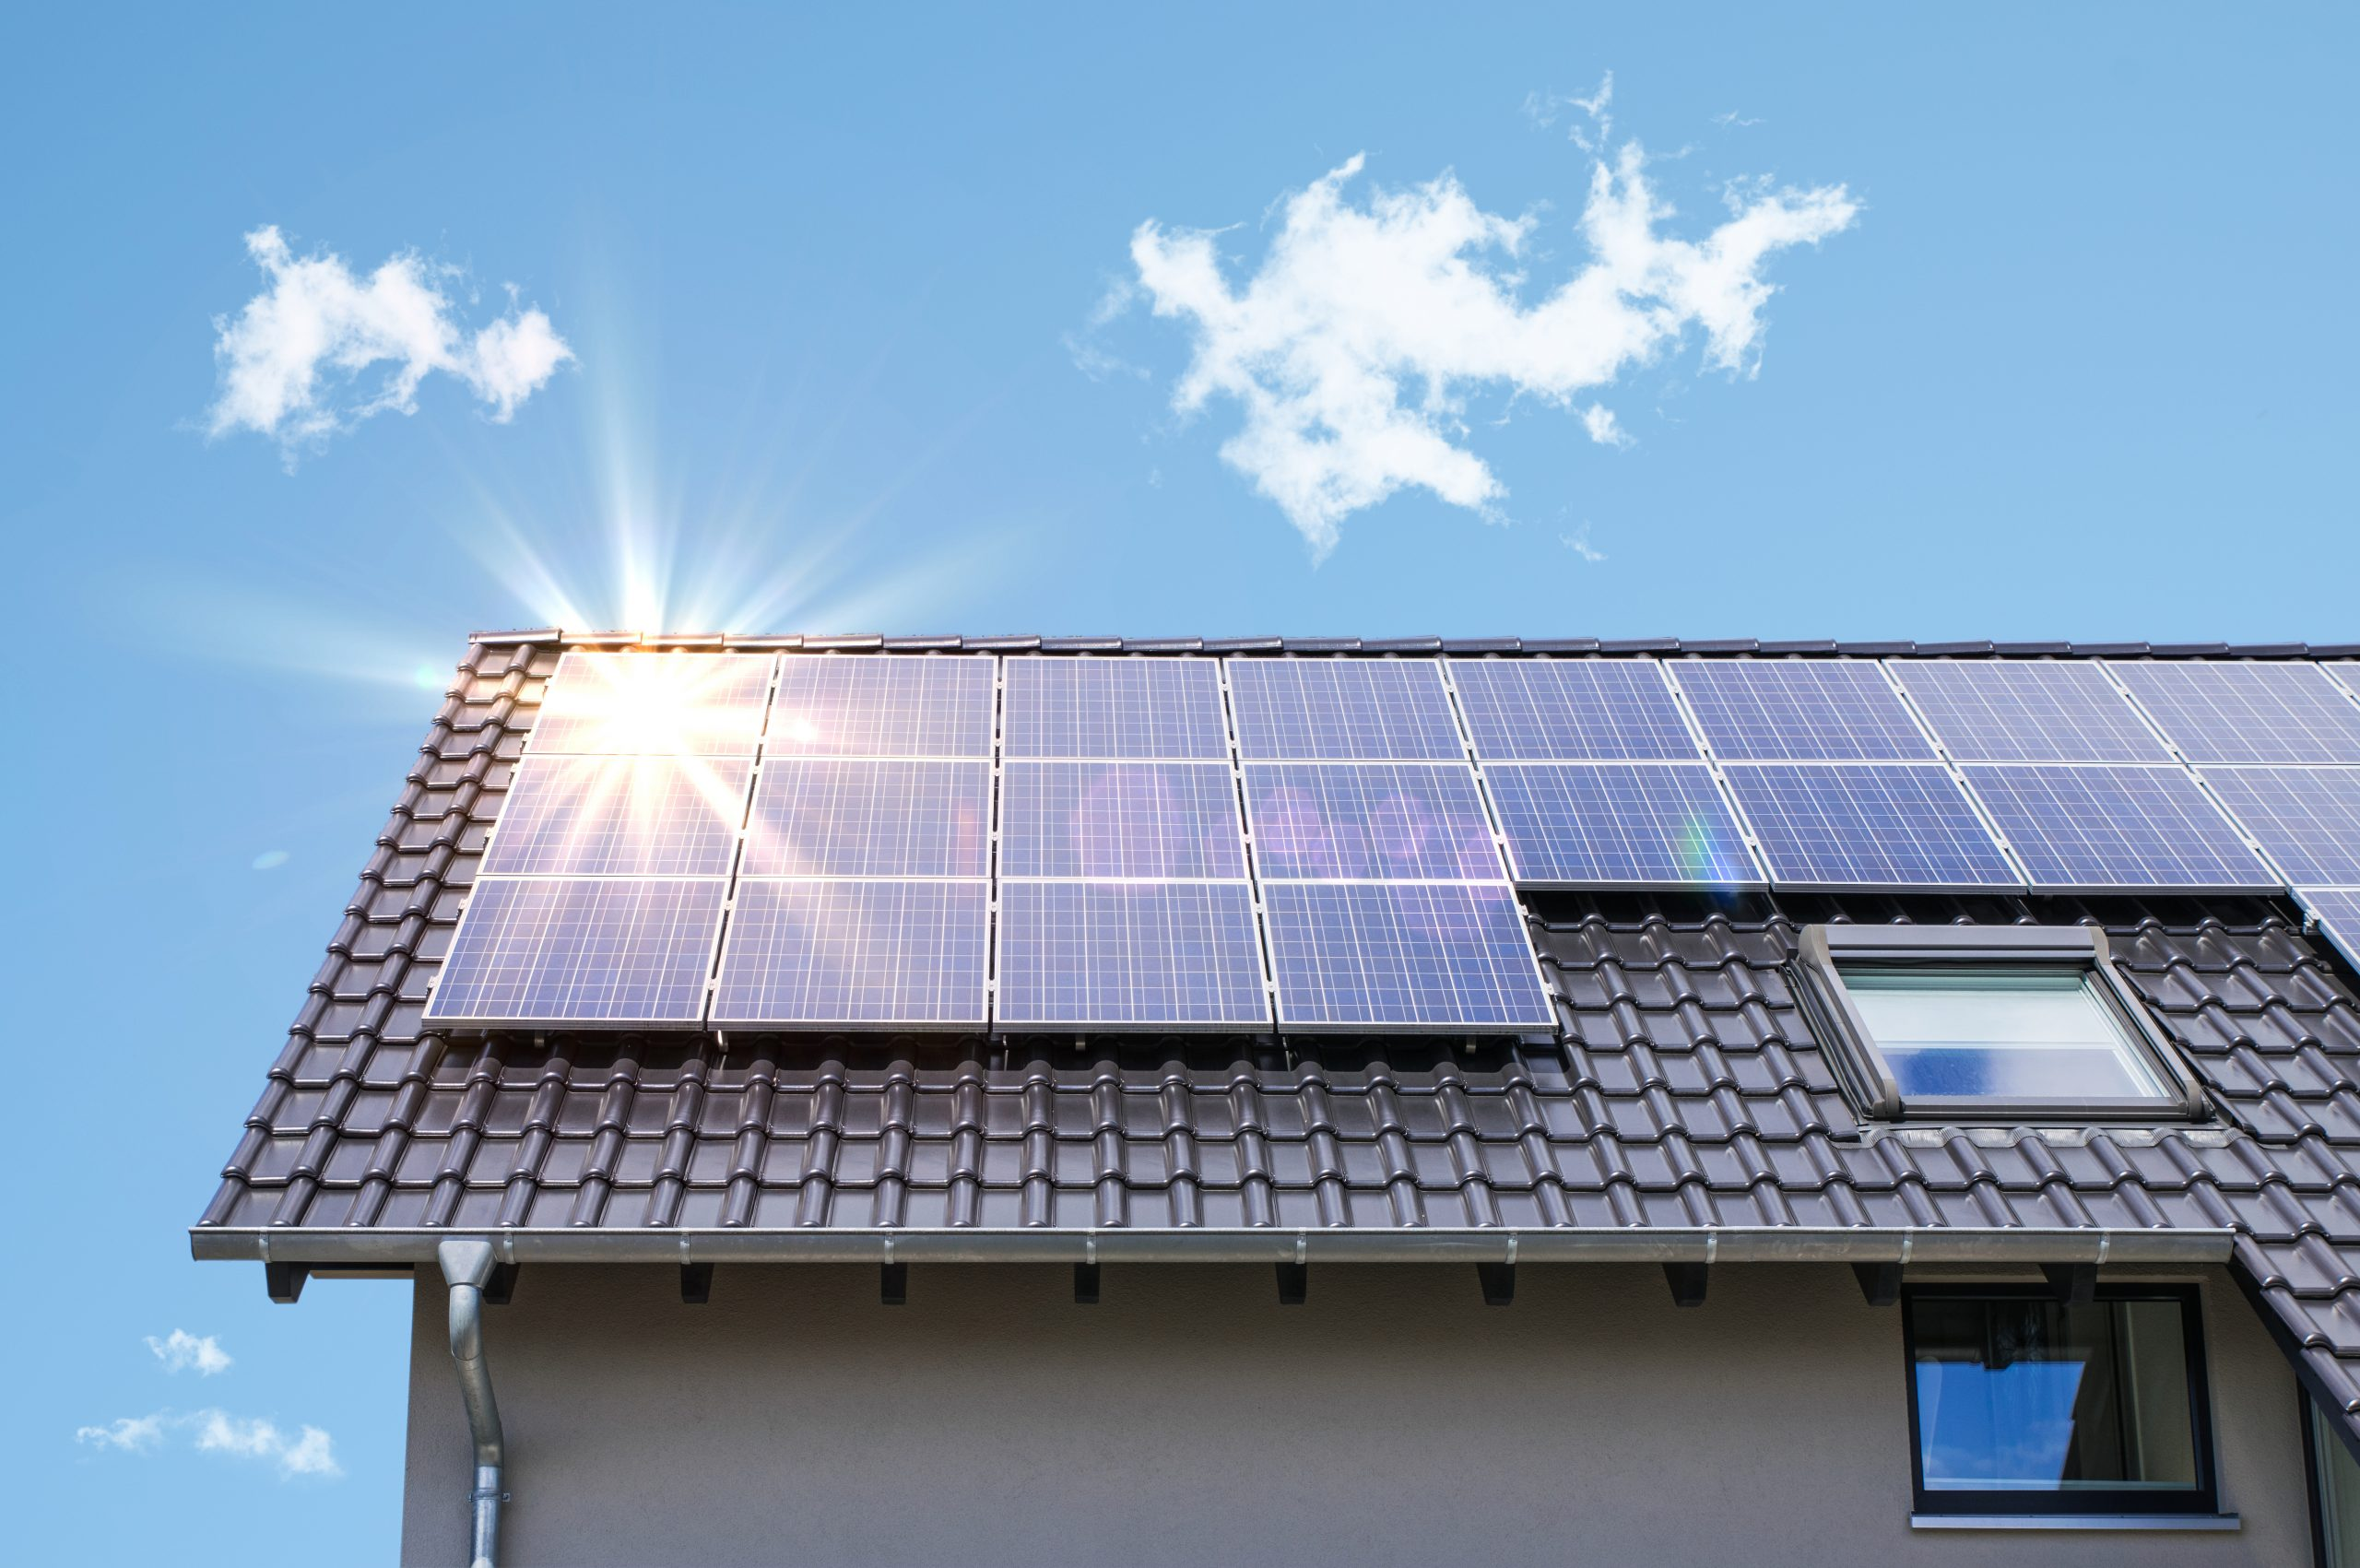 California Marks Important Milestone for Balancing Grid Needs, Consumer Protection in Key Smart Inverter Function